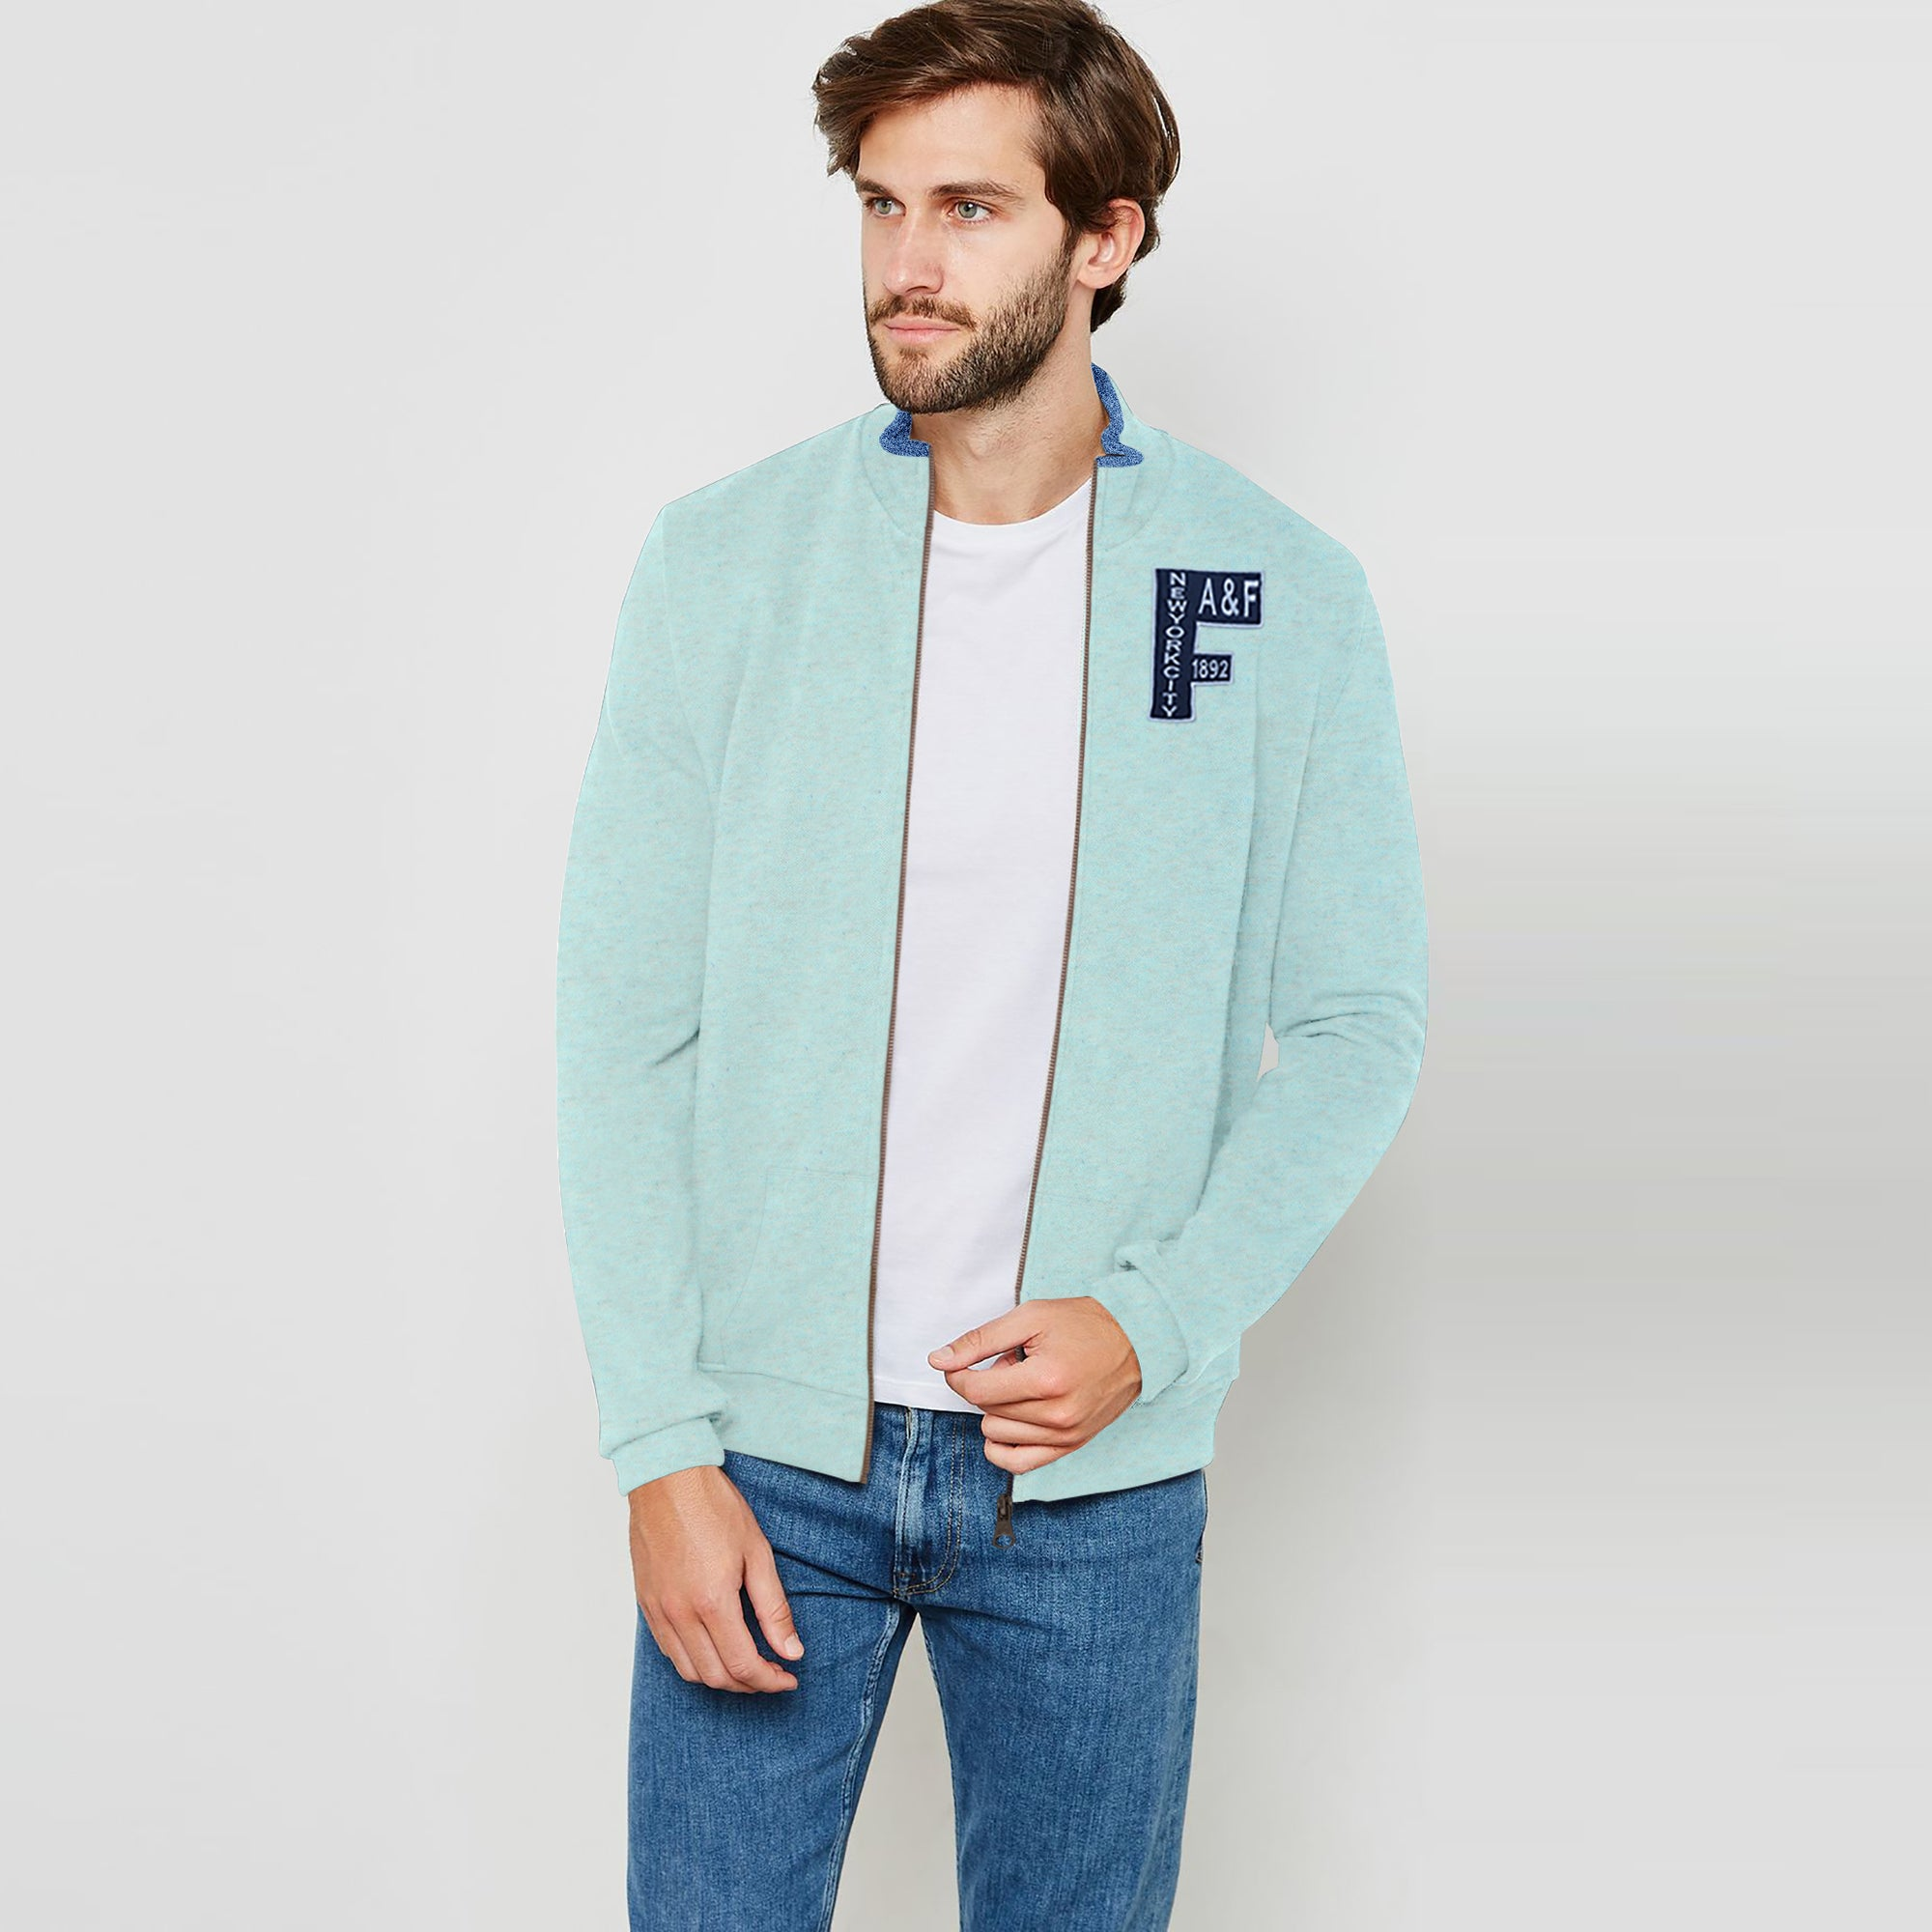 A&F Fleece Full Zipper Mock Neck Jacket For Men-Light Green Melange-BE7500